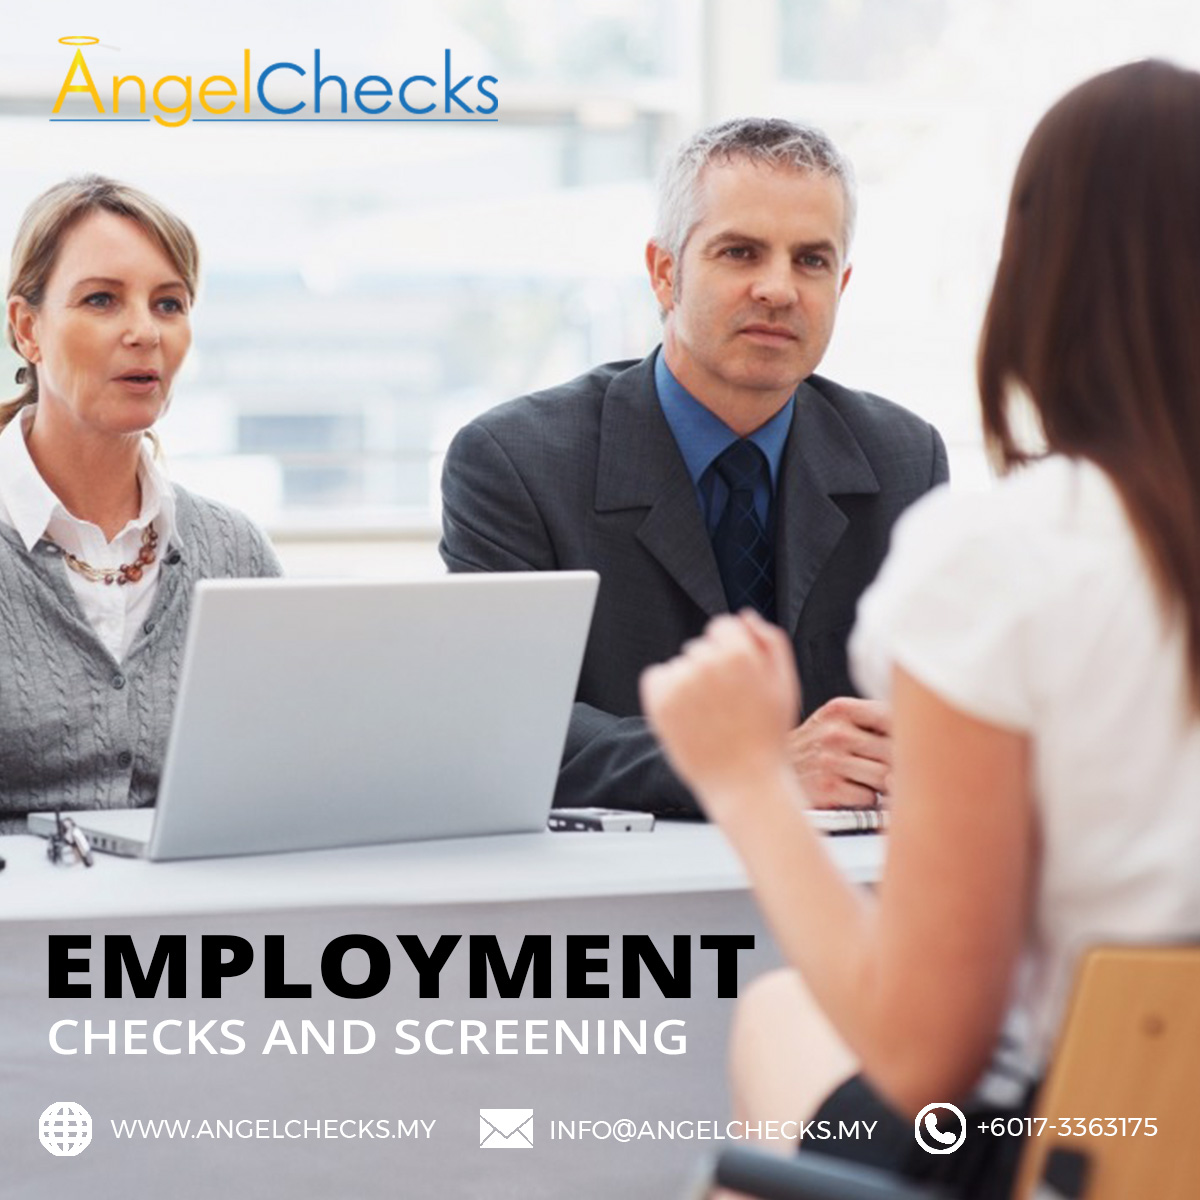 The Complete Guide on Pre-Employment Check Services